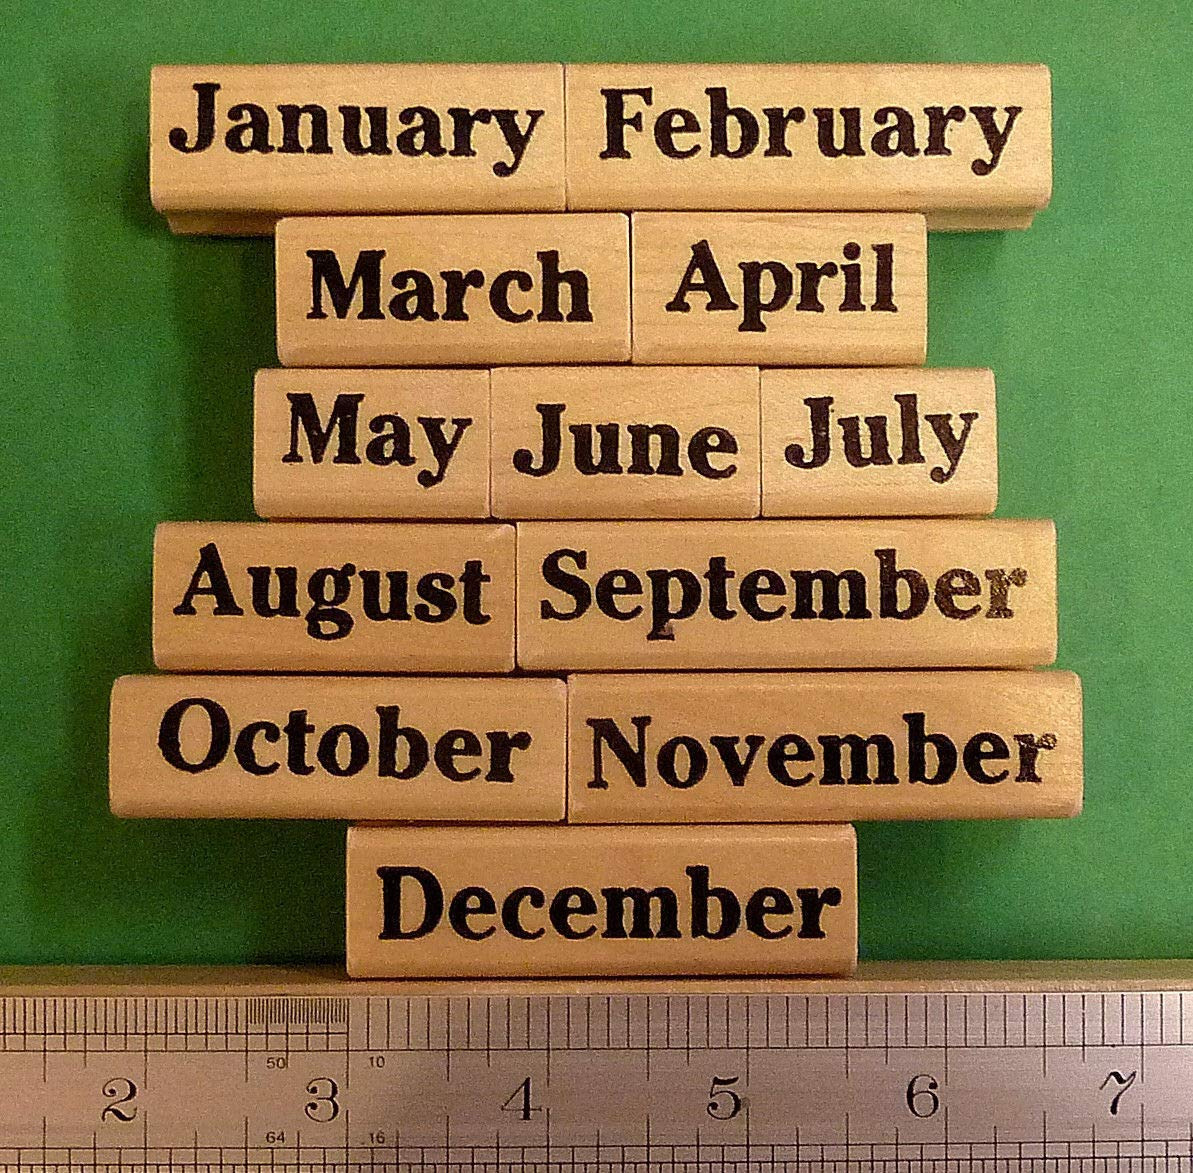 Months of The Year Rubber Stamp Set of 12, Wood Mounted Teacher's Set - Rubber Stamp Wood Carving Blocks by Wooden Stamps